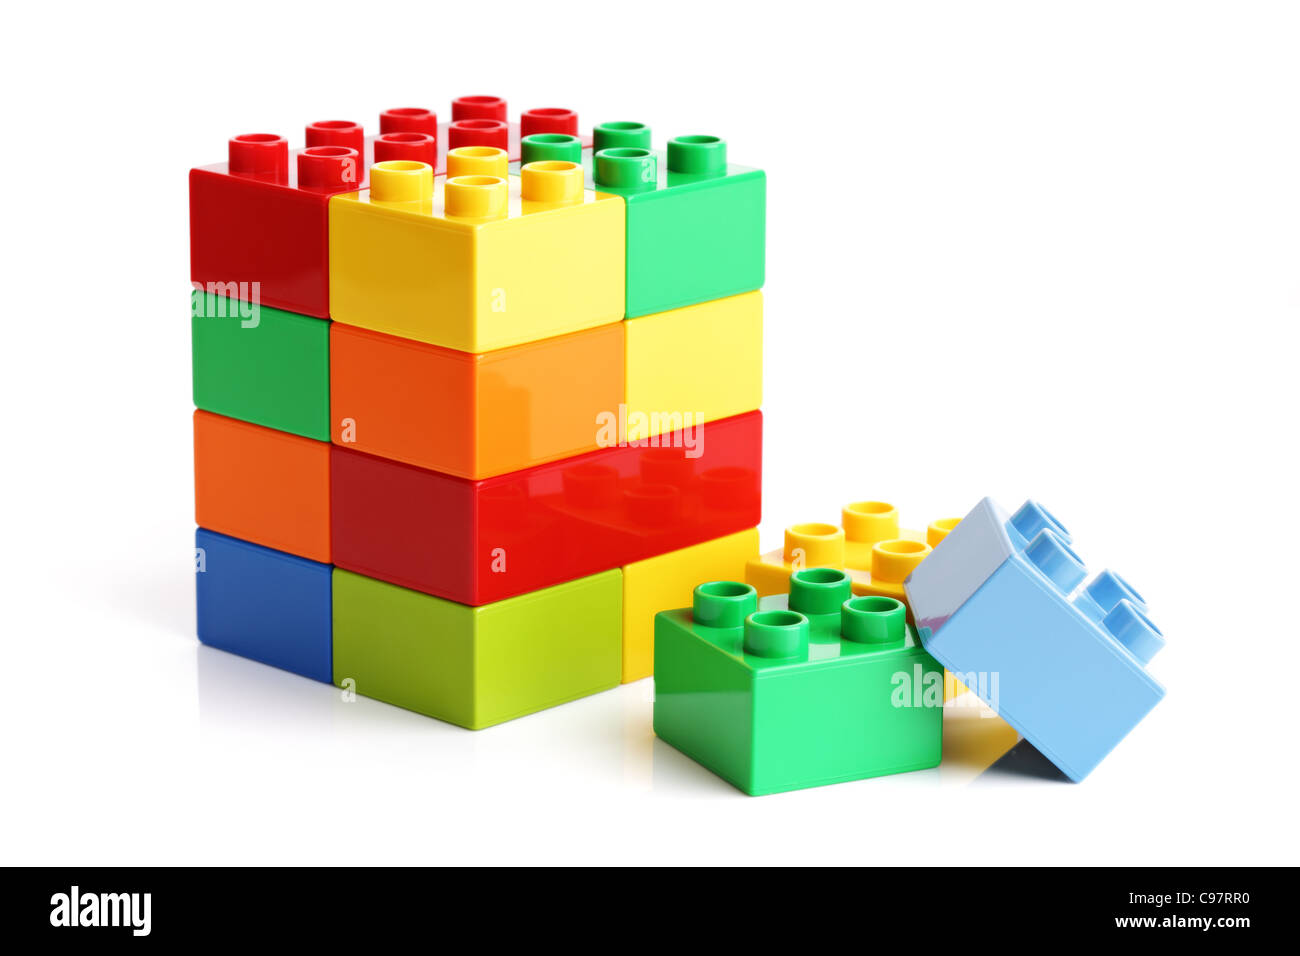 Building blocks on a white background - Stock Image